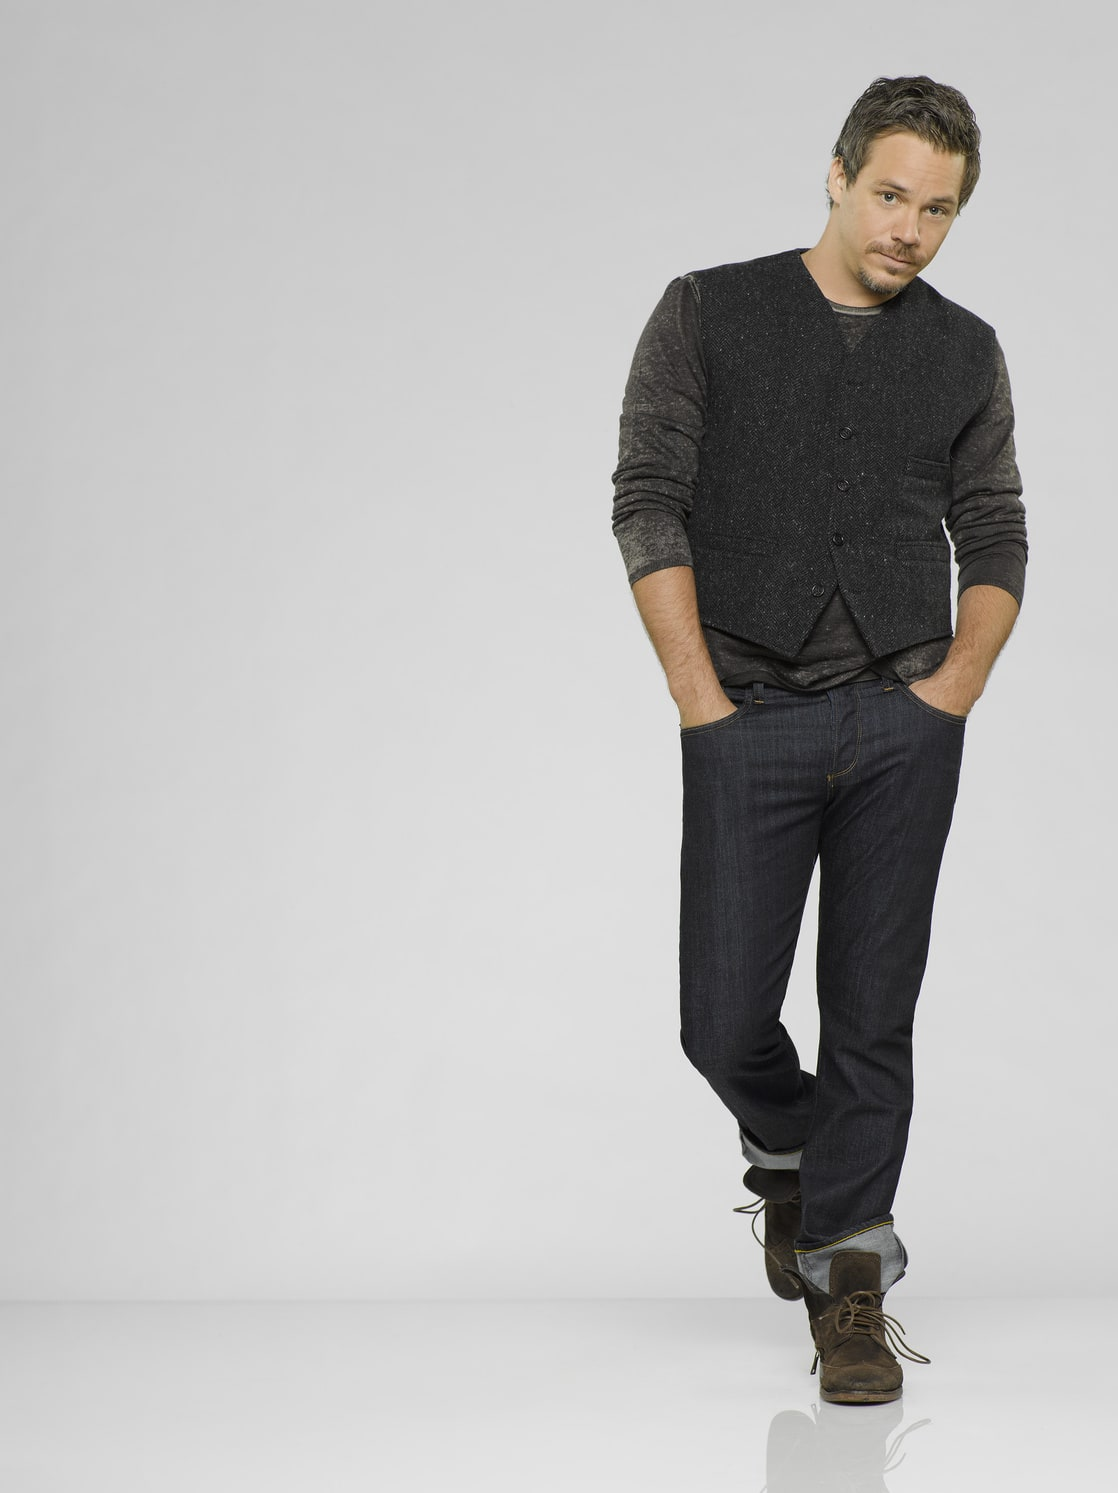 Picture of Michael Raymond-James